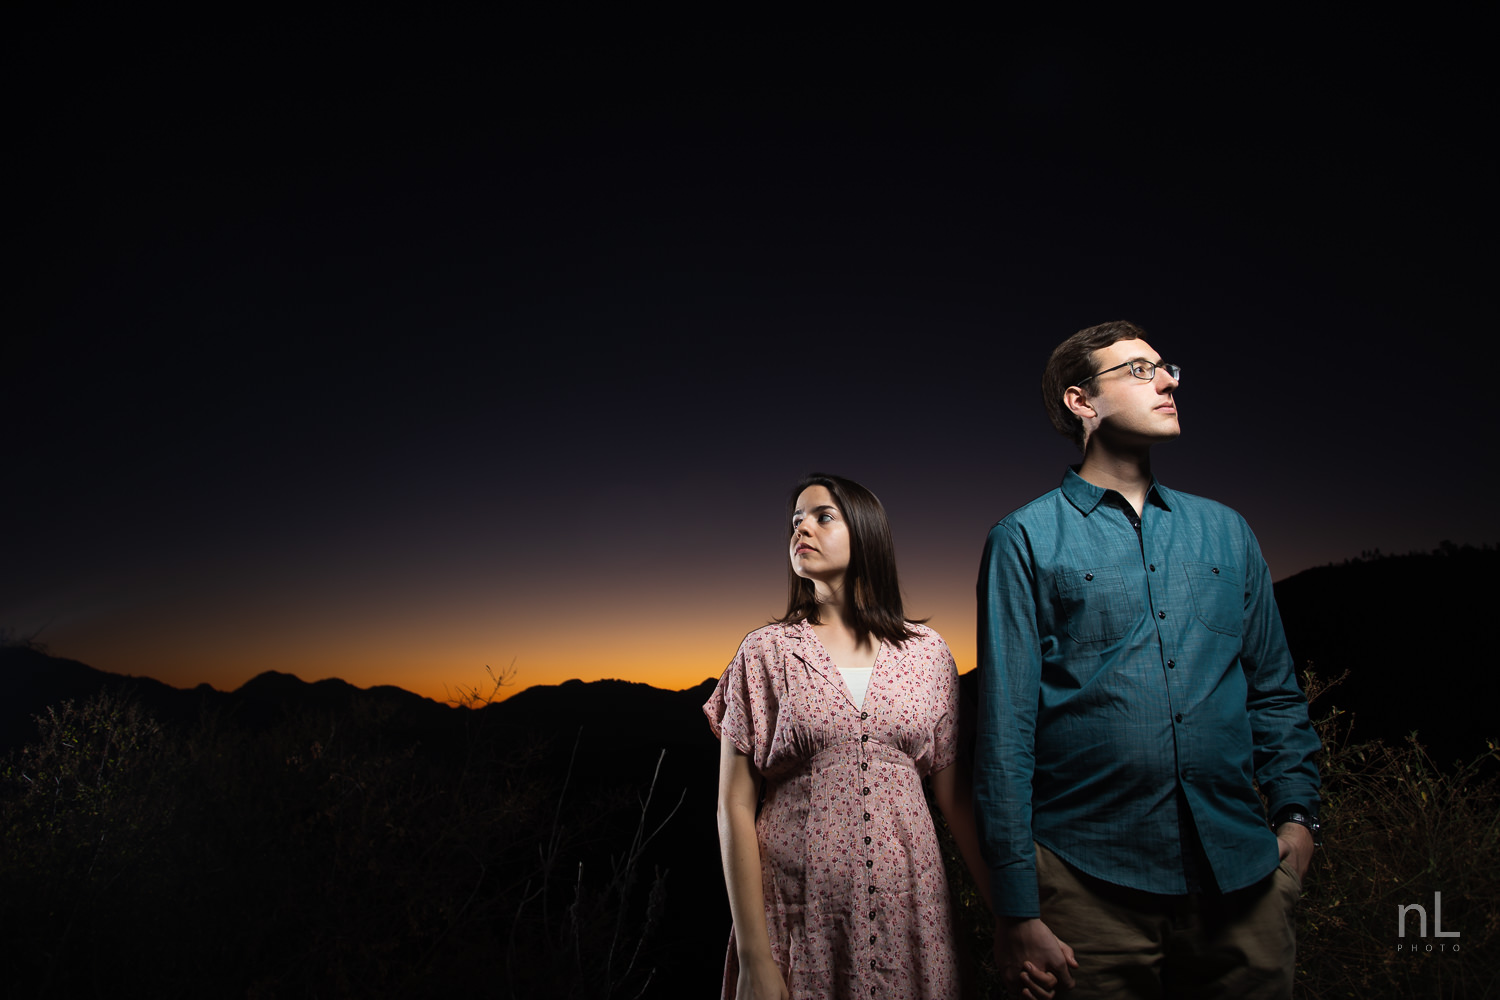 los-angeles-national-forest-engagement-photography-couple-at-dusk-epic-flash